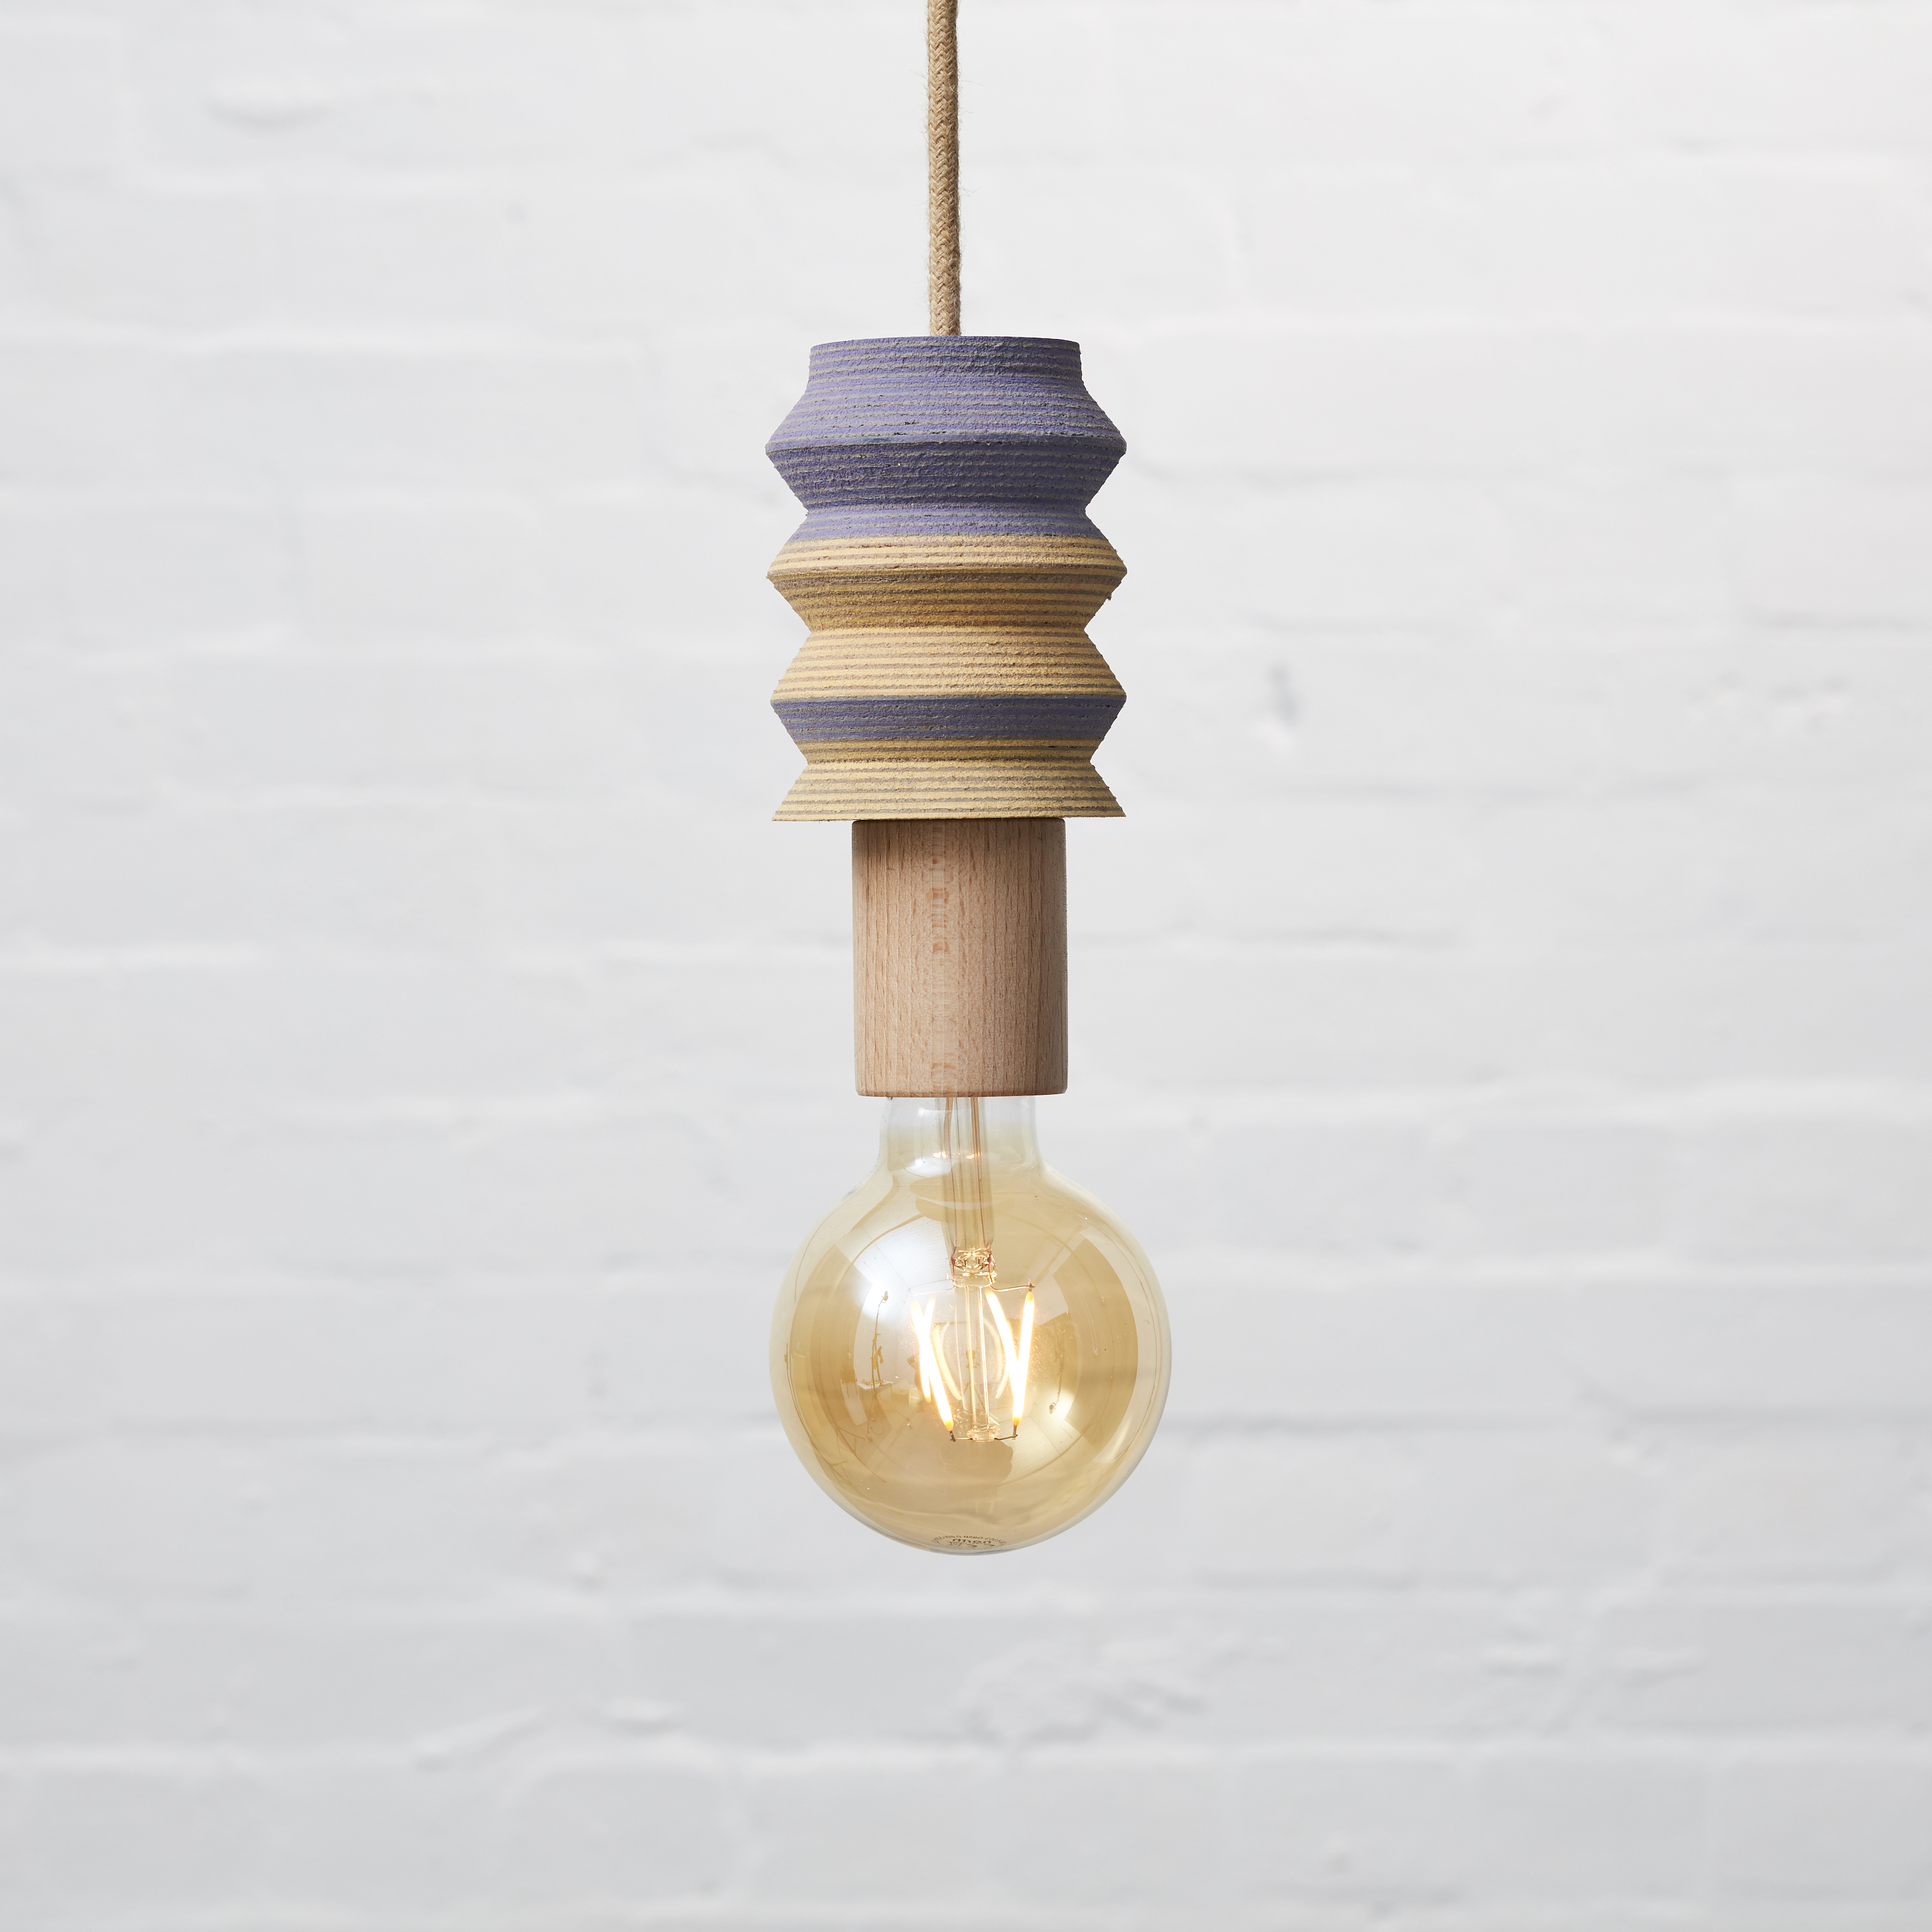 Lin pendant 2 - <p>The LIN pendant lights have been turned by hand on a lathe from blocks of laminated squares of Linoleum flooring. These playful and subtly vibrant pendants have been finished with a natural jute covered lighting cord, a solid wood E27 fitting bulb holder and a standard 3 pin plug. Statement yet welcoming lighting to brighten up interior or commercial spaces.</p>  | Matter of Stuff